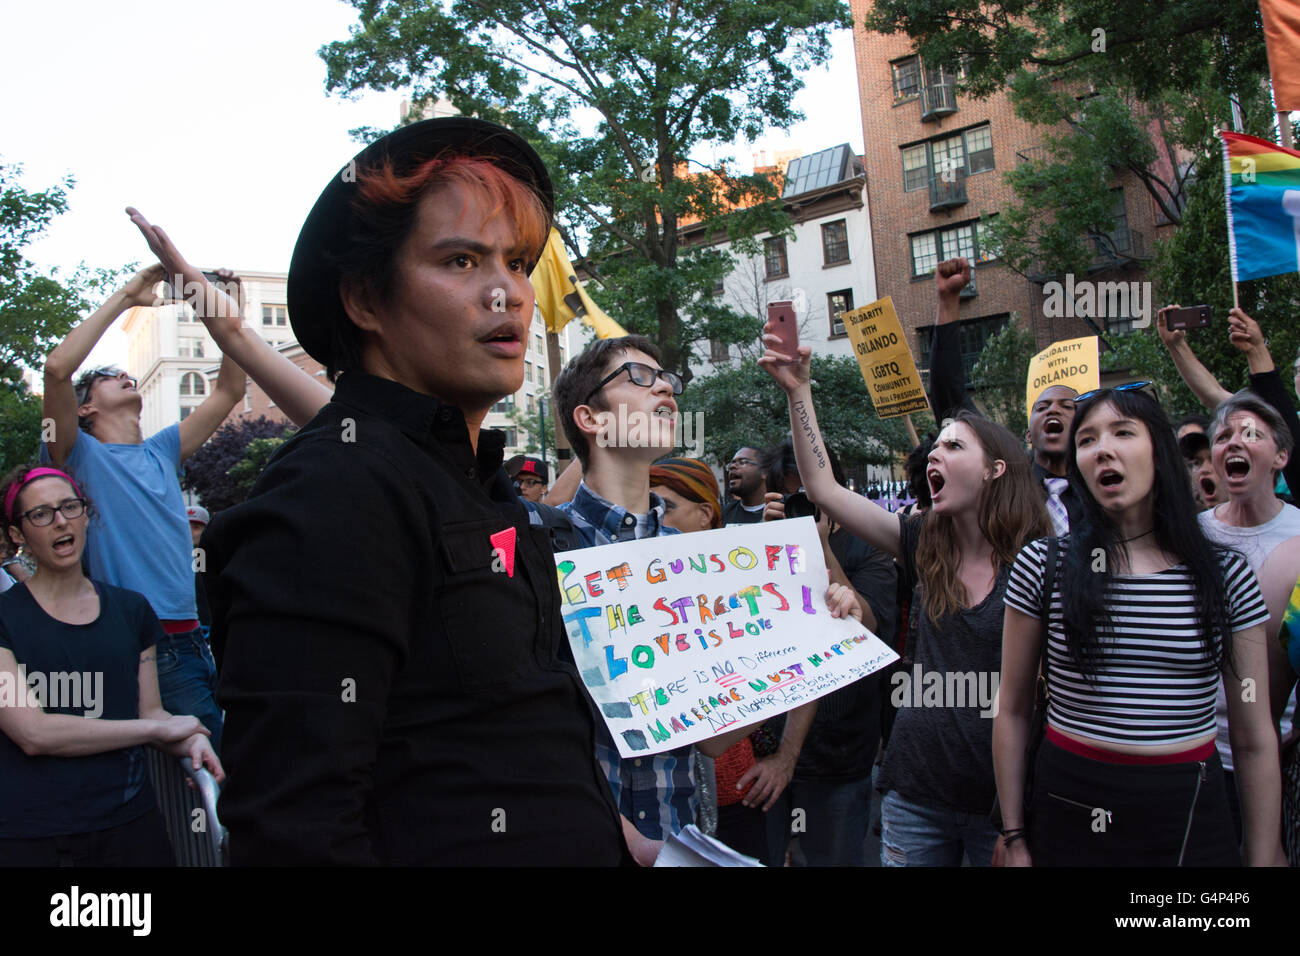 New York, USA. 18th June 2016. Demonstrators rally in front of Stonewall Inn. Members and supporters of the LGBT - Stock Image